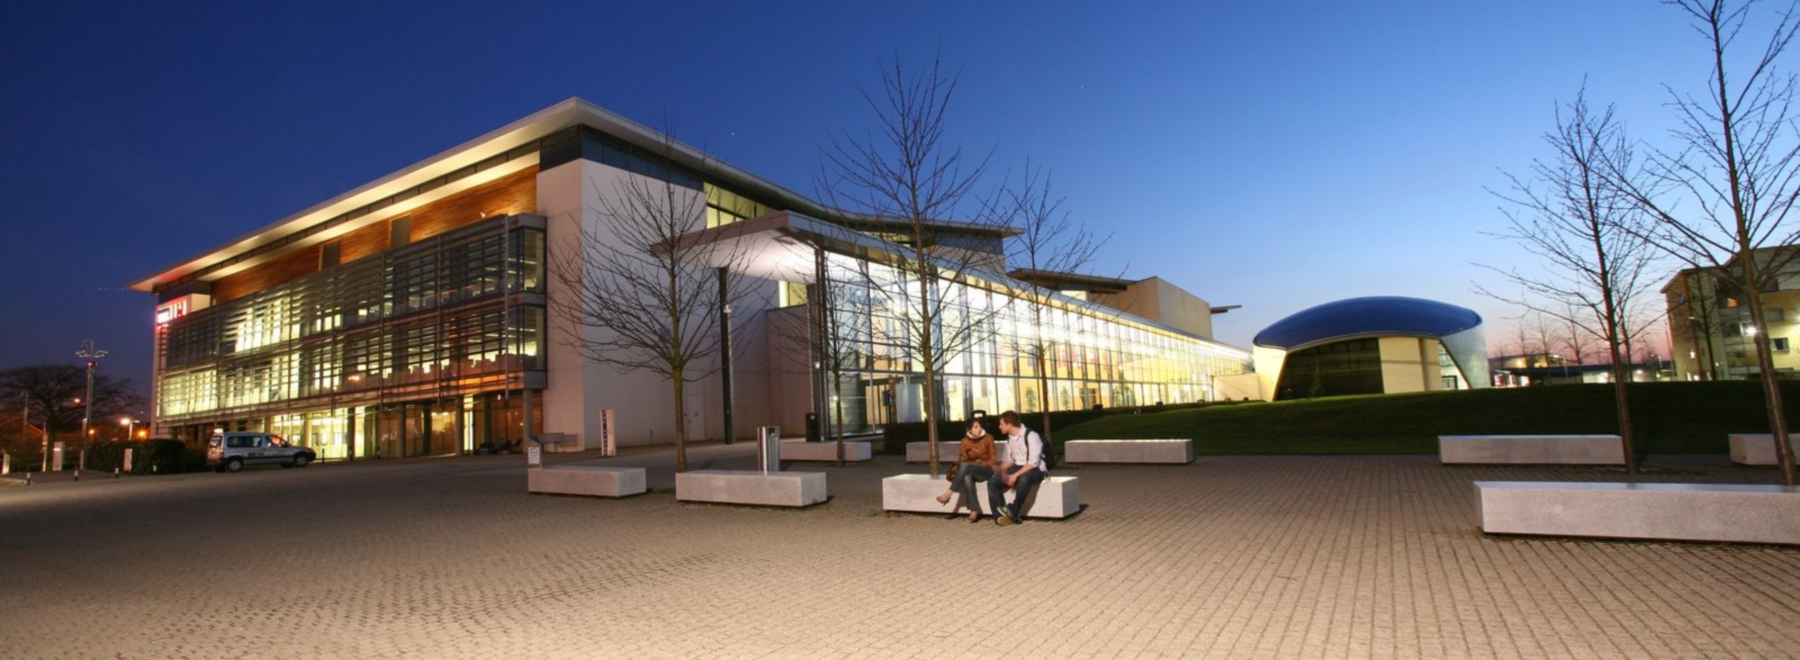 University of Hertfordshire header